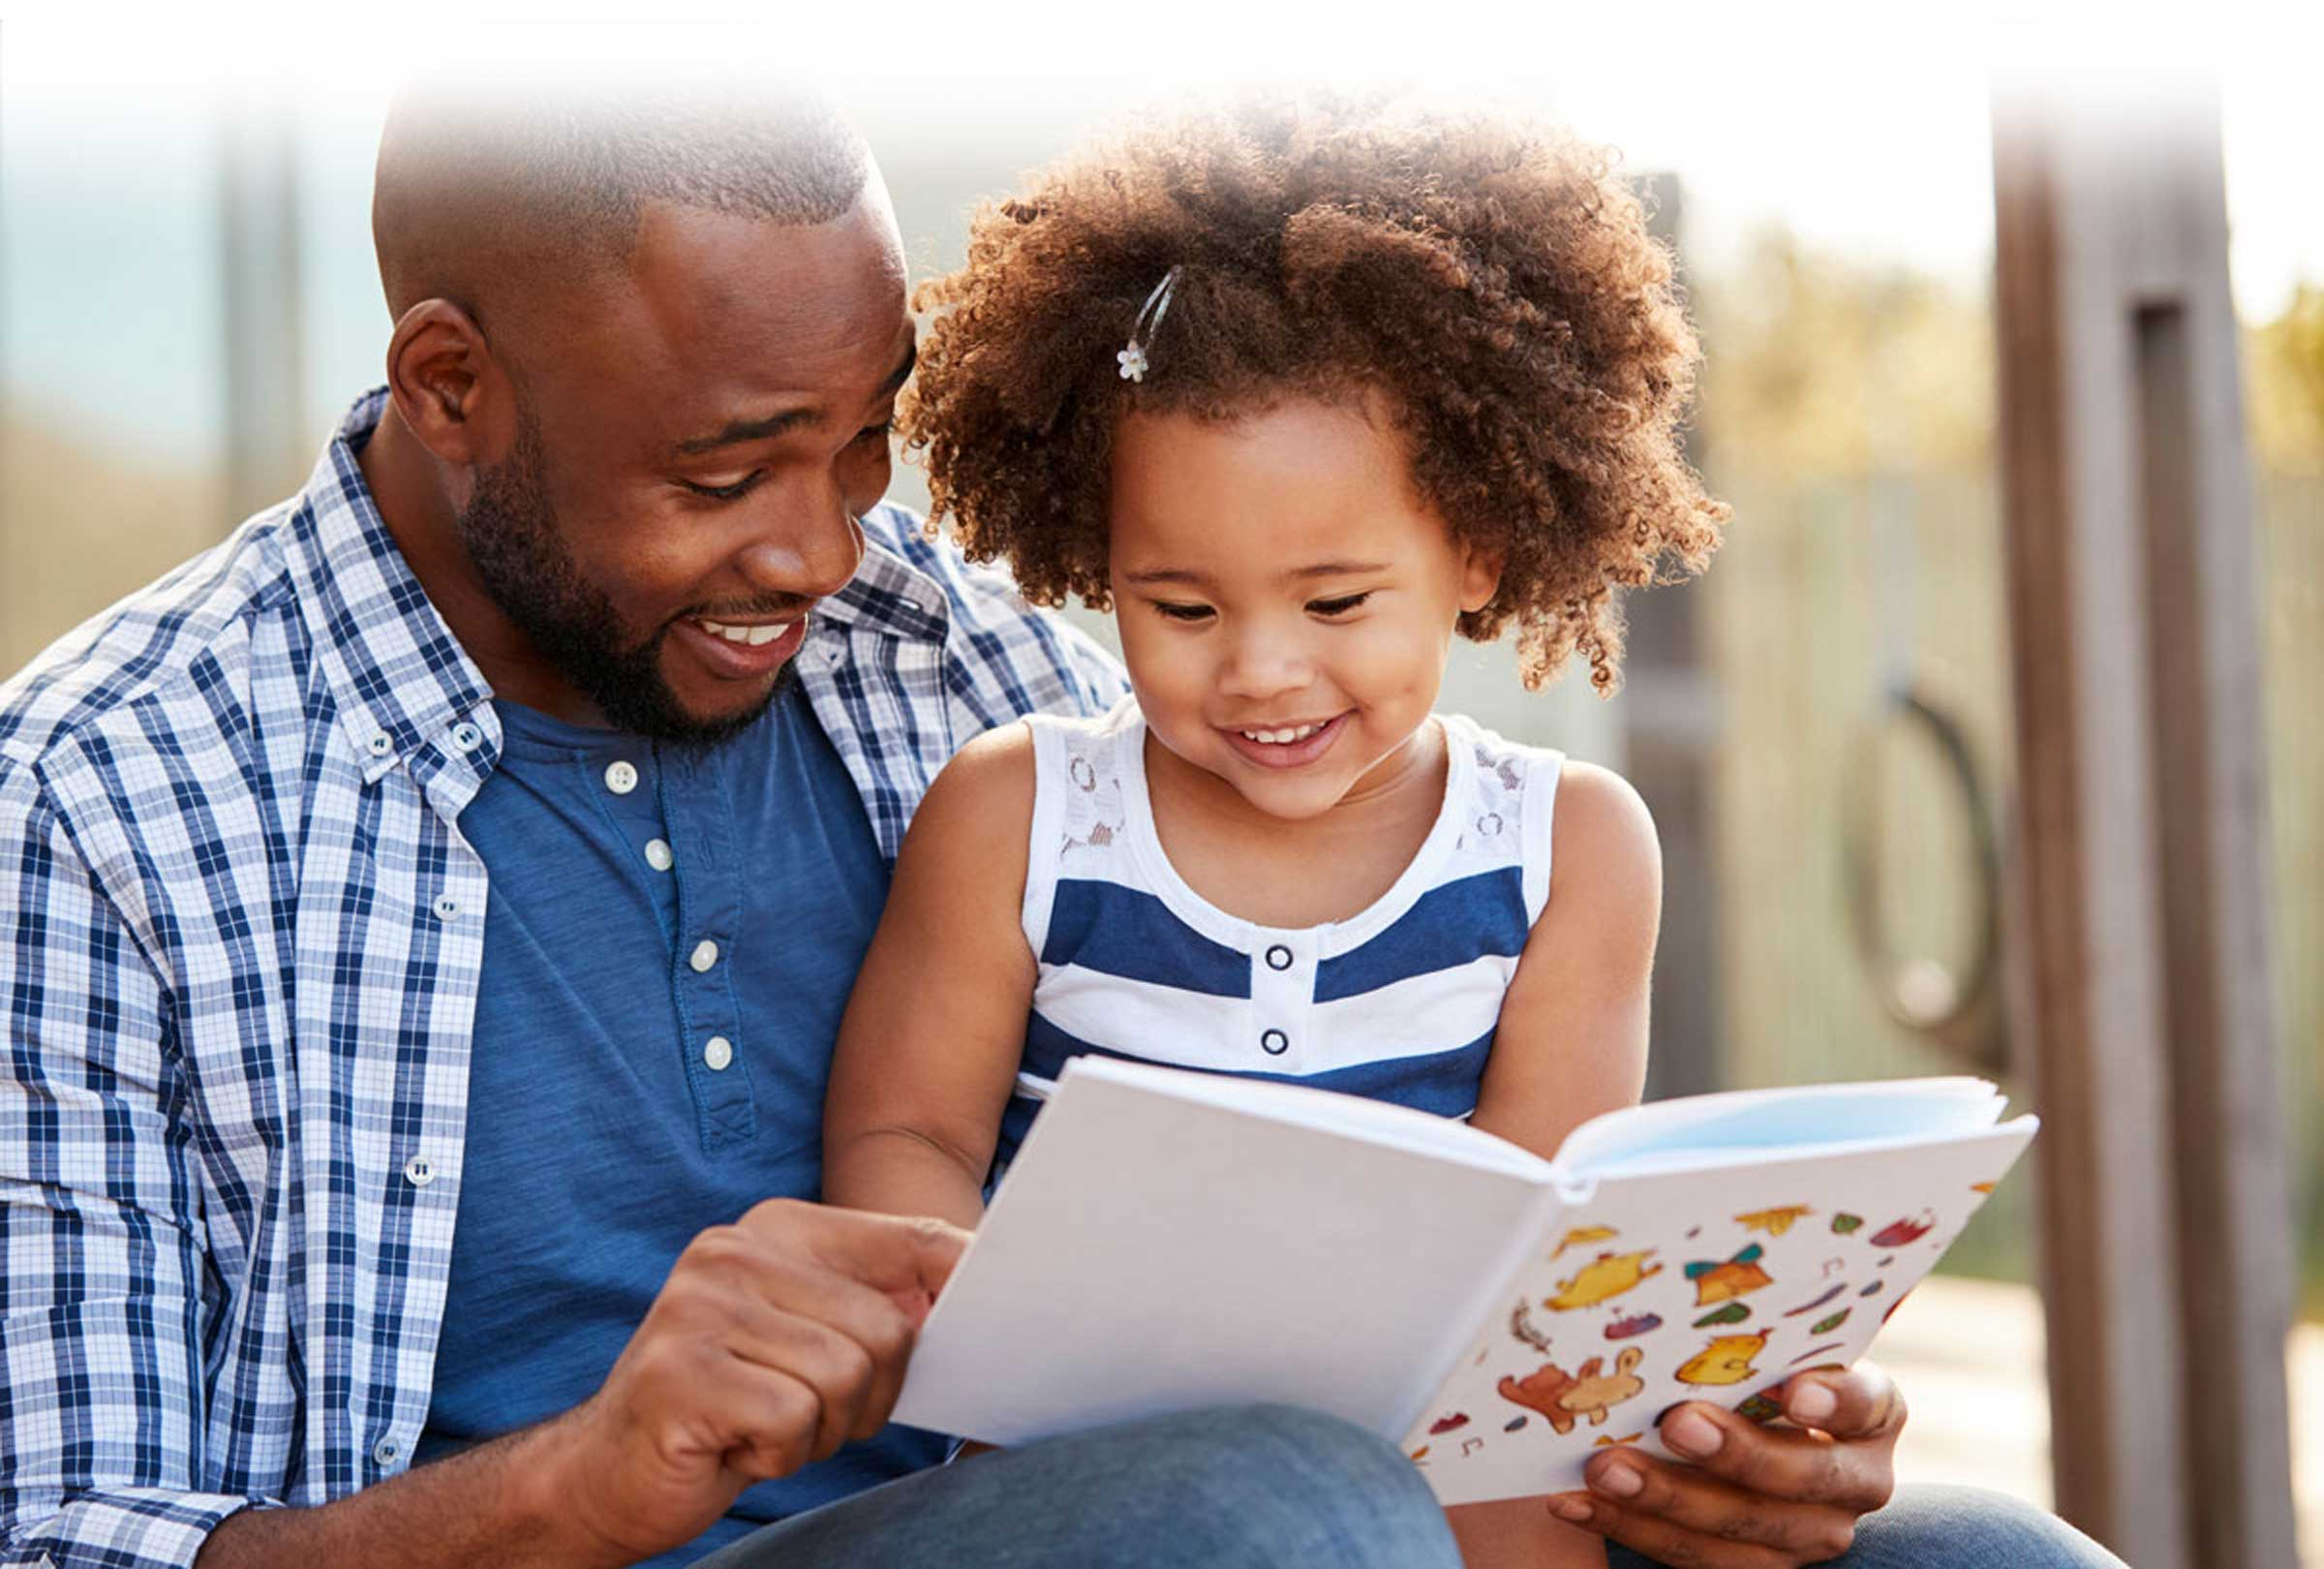 Dad with daughter reading book, smiling, outdoors